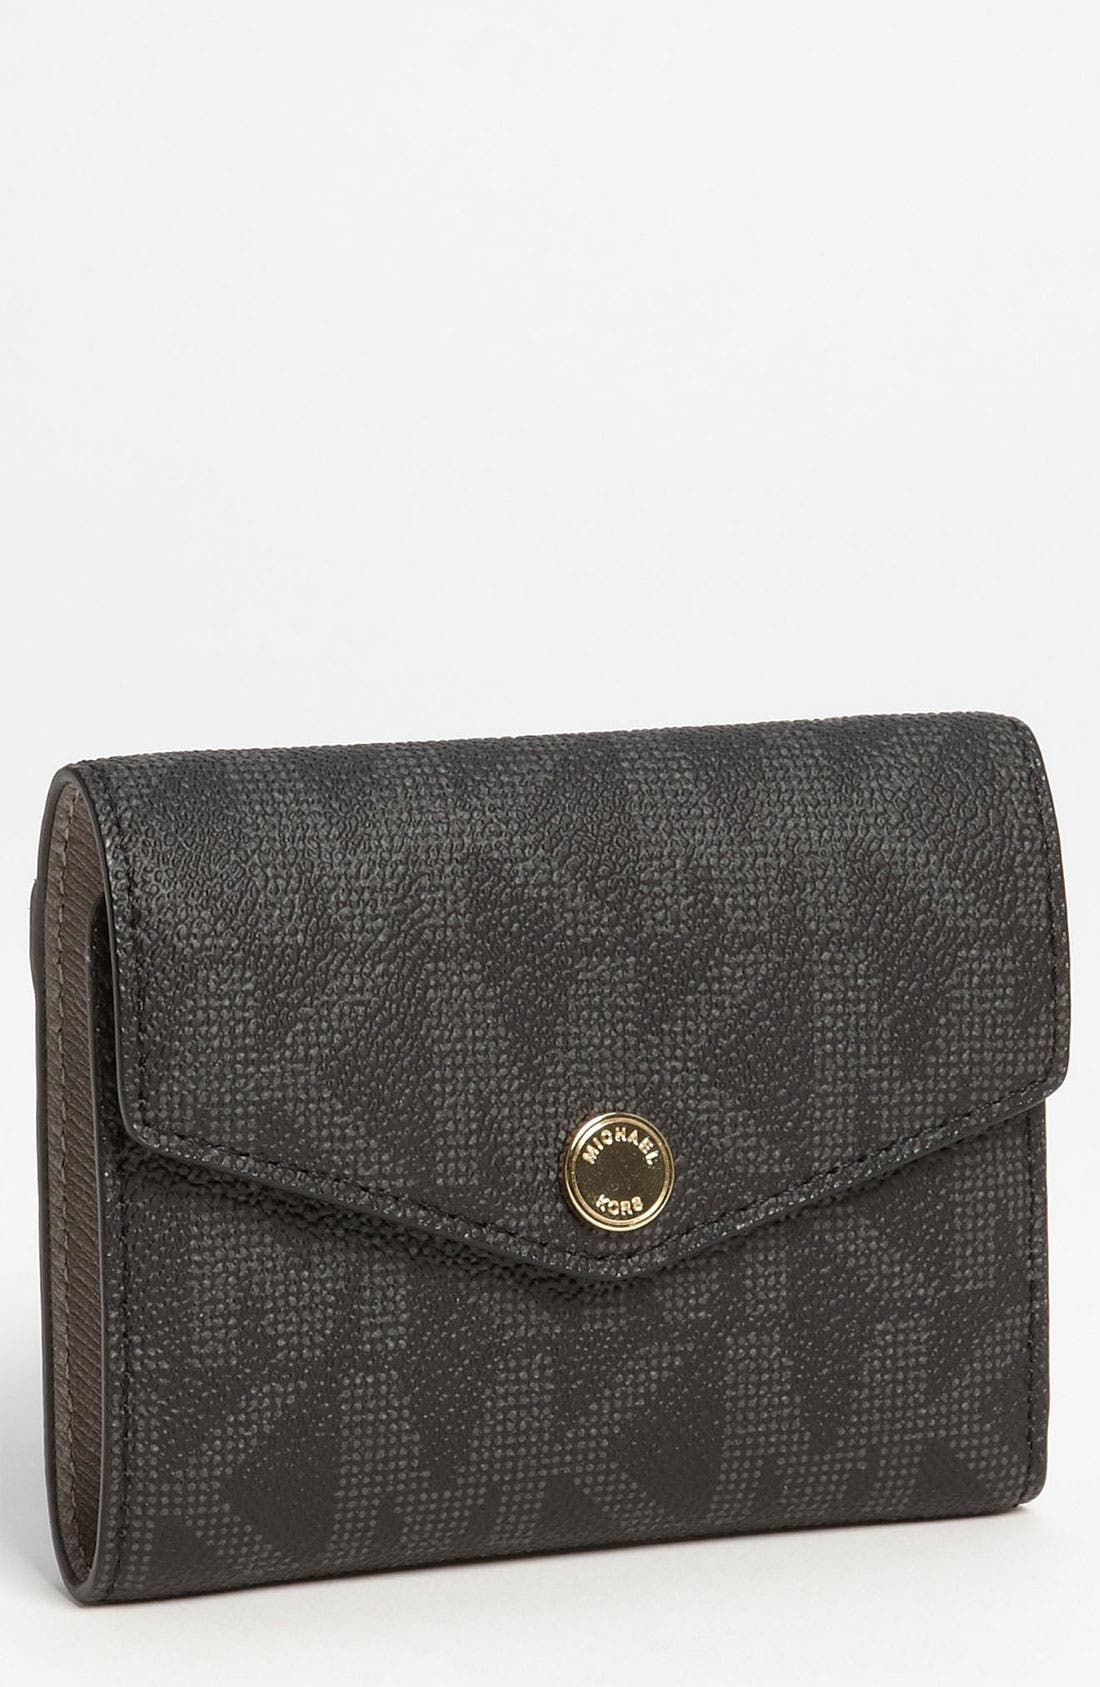 Alternate Image 1 Selected - MICHAEL Michael Kors 'Medium' Carryall Wallet